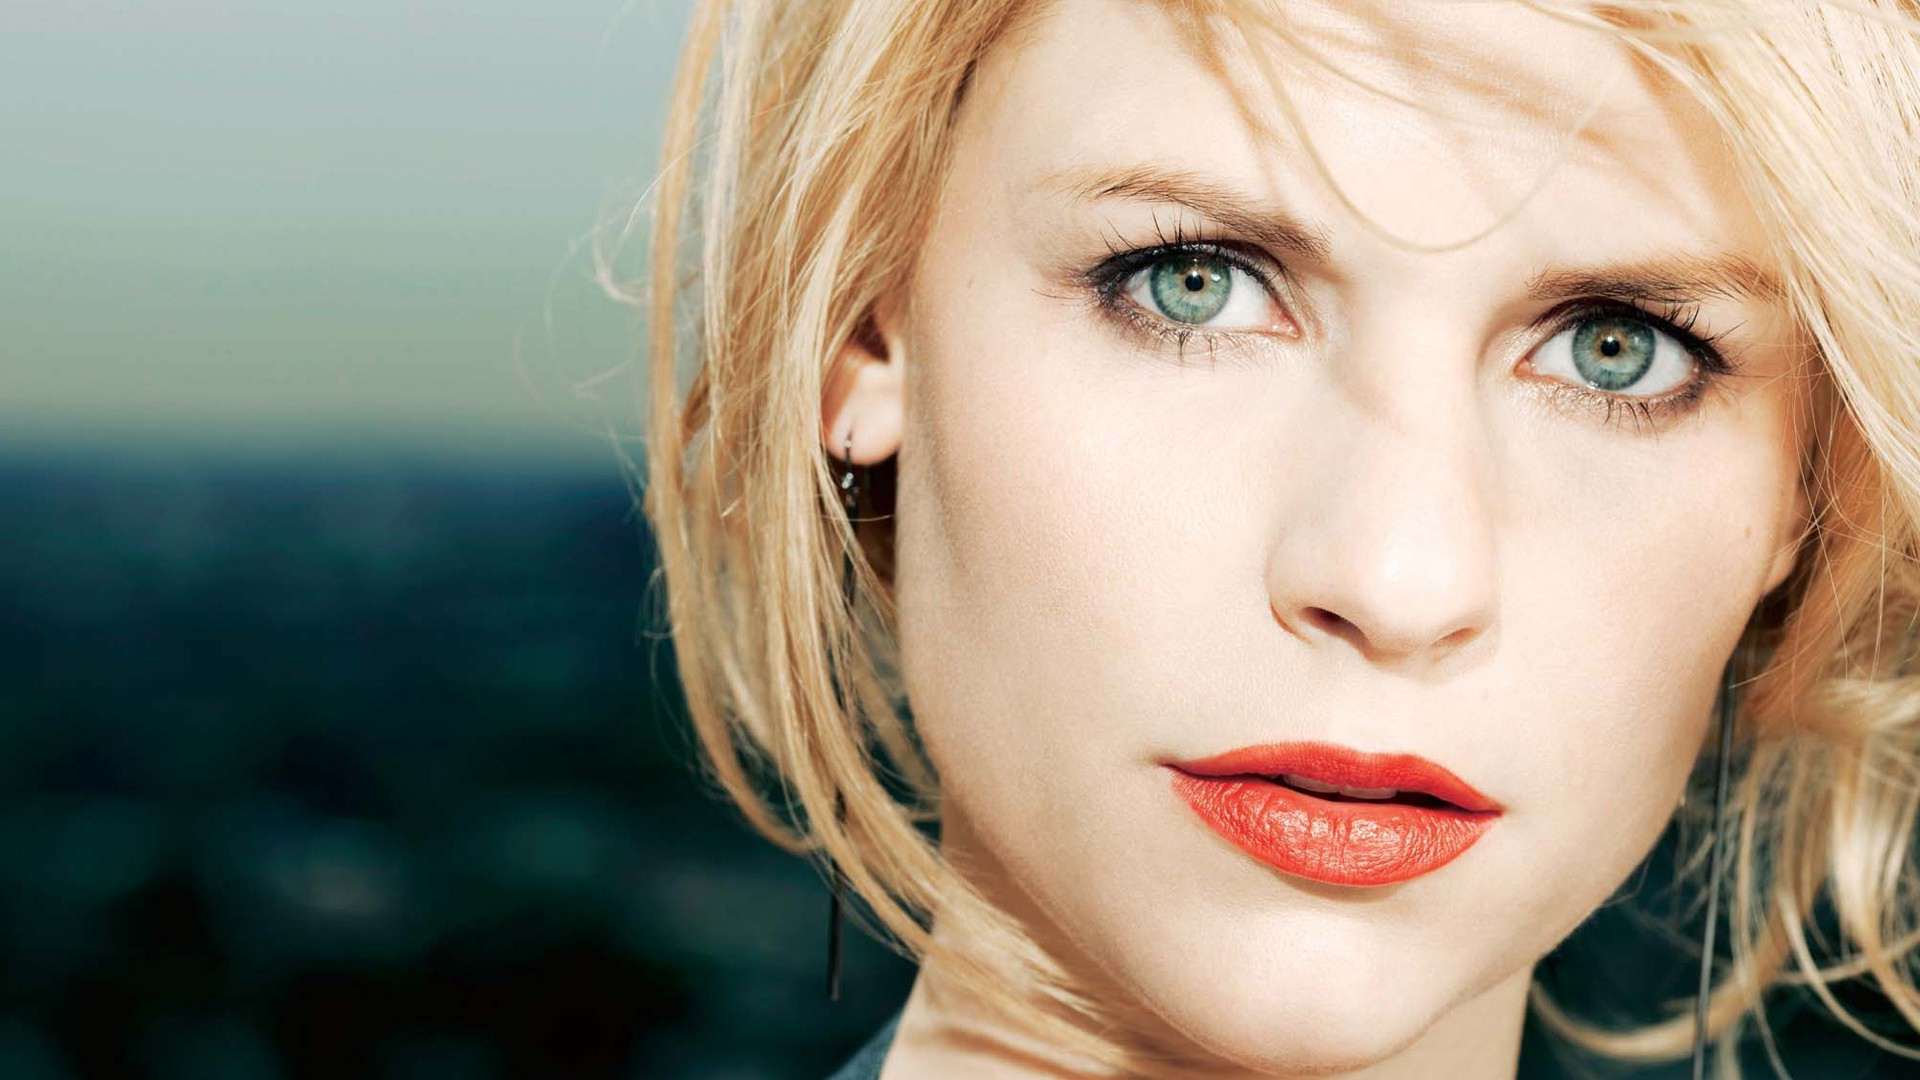 1920x1080 - Claire Danes Wallpapers 10